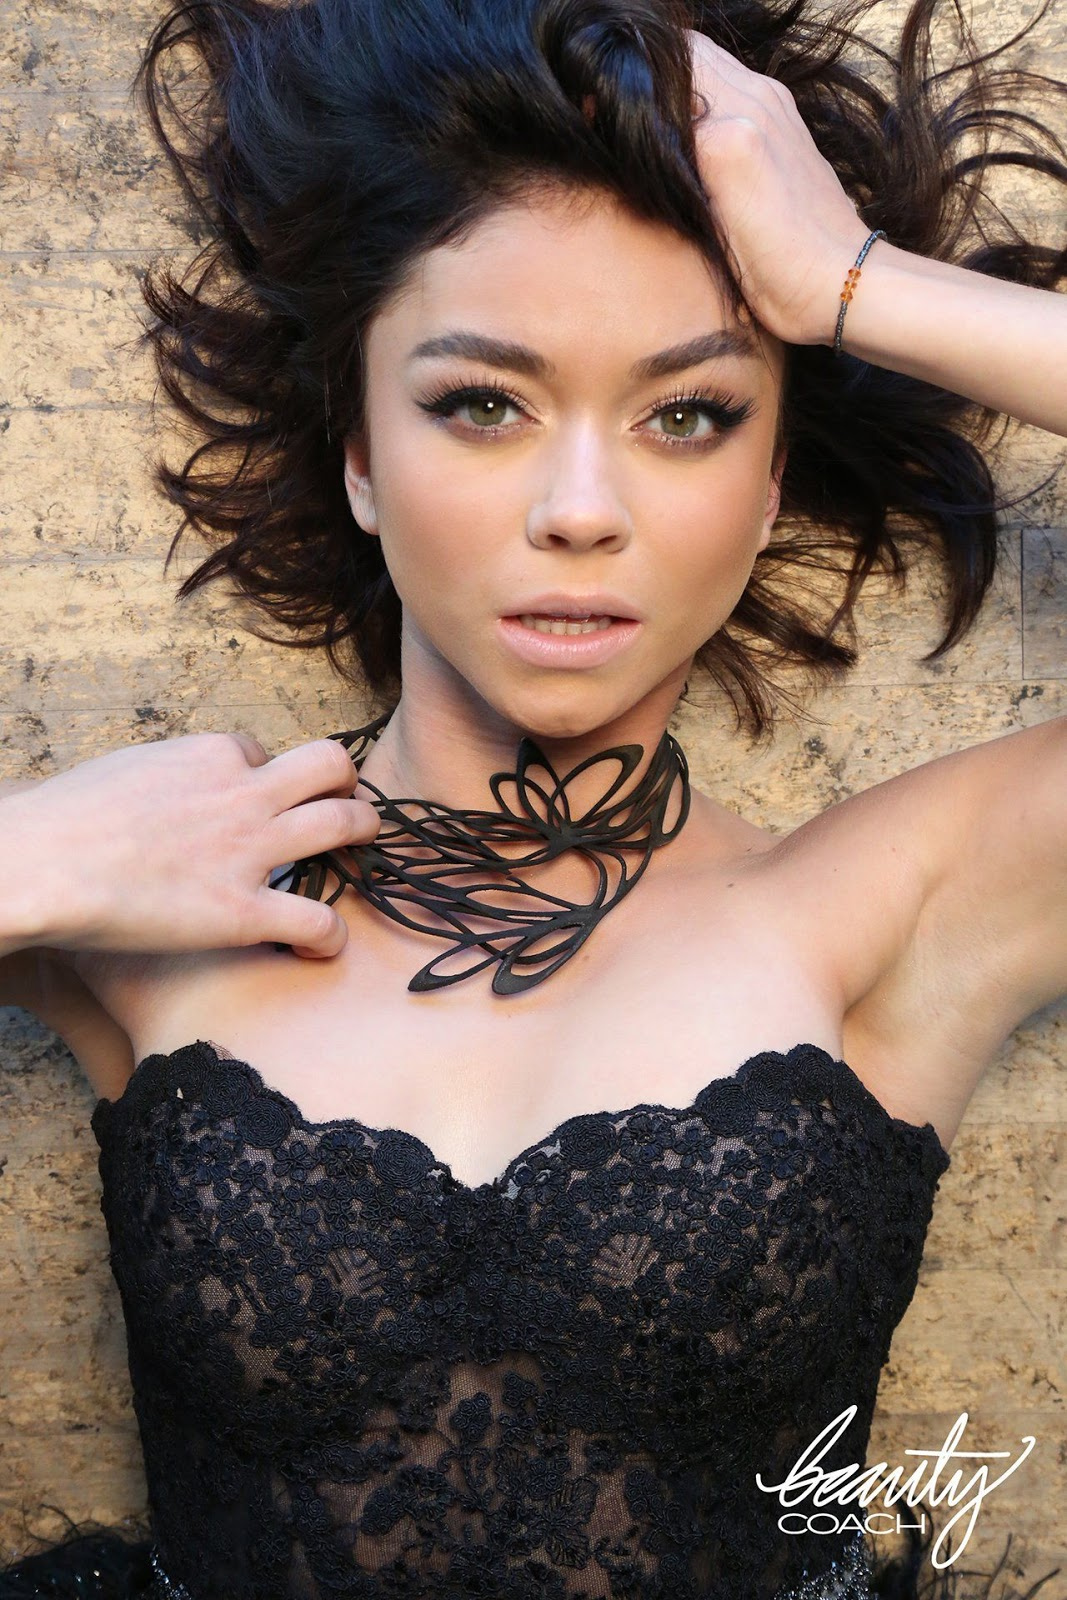 Sarah Hyland channels Black Swan for Beauty Coach